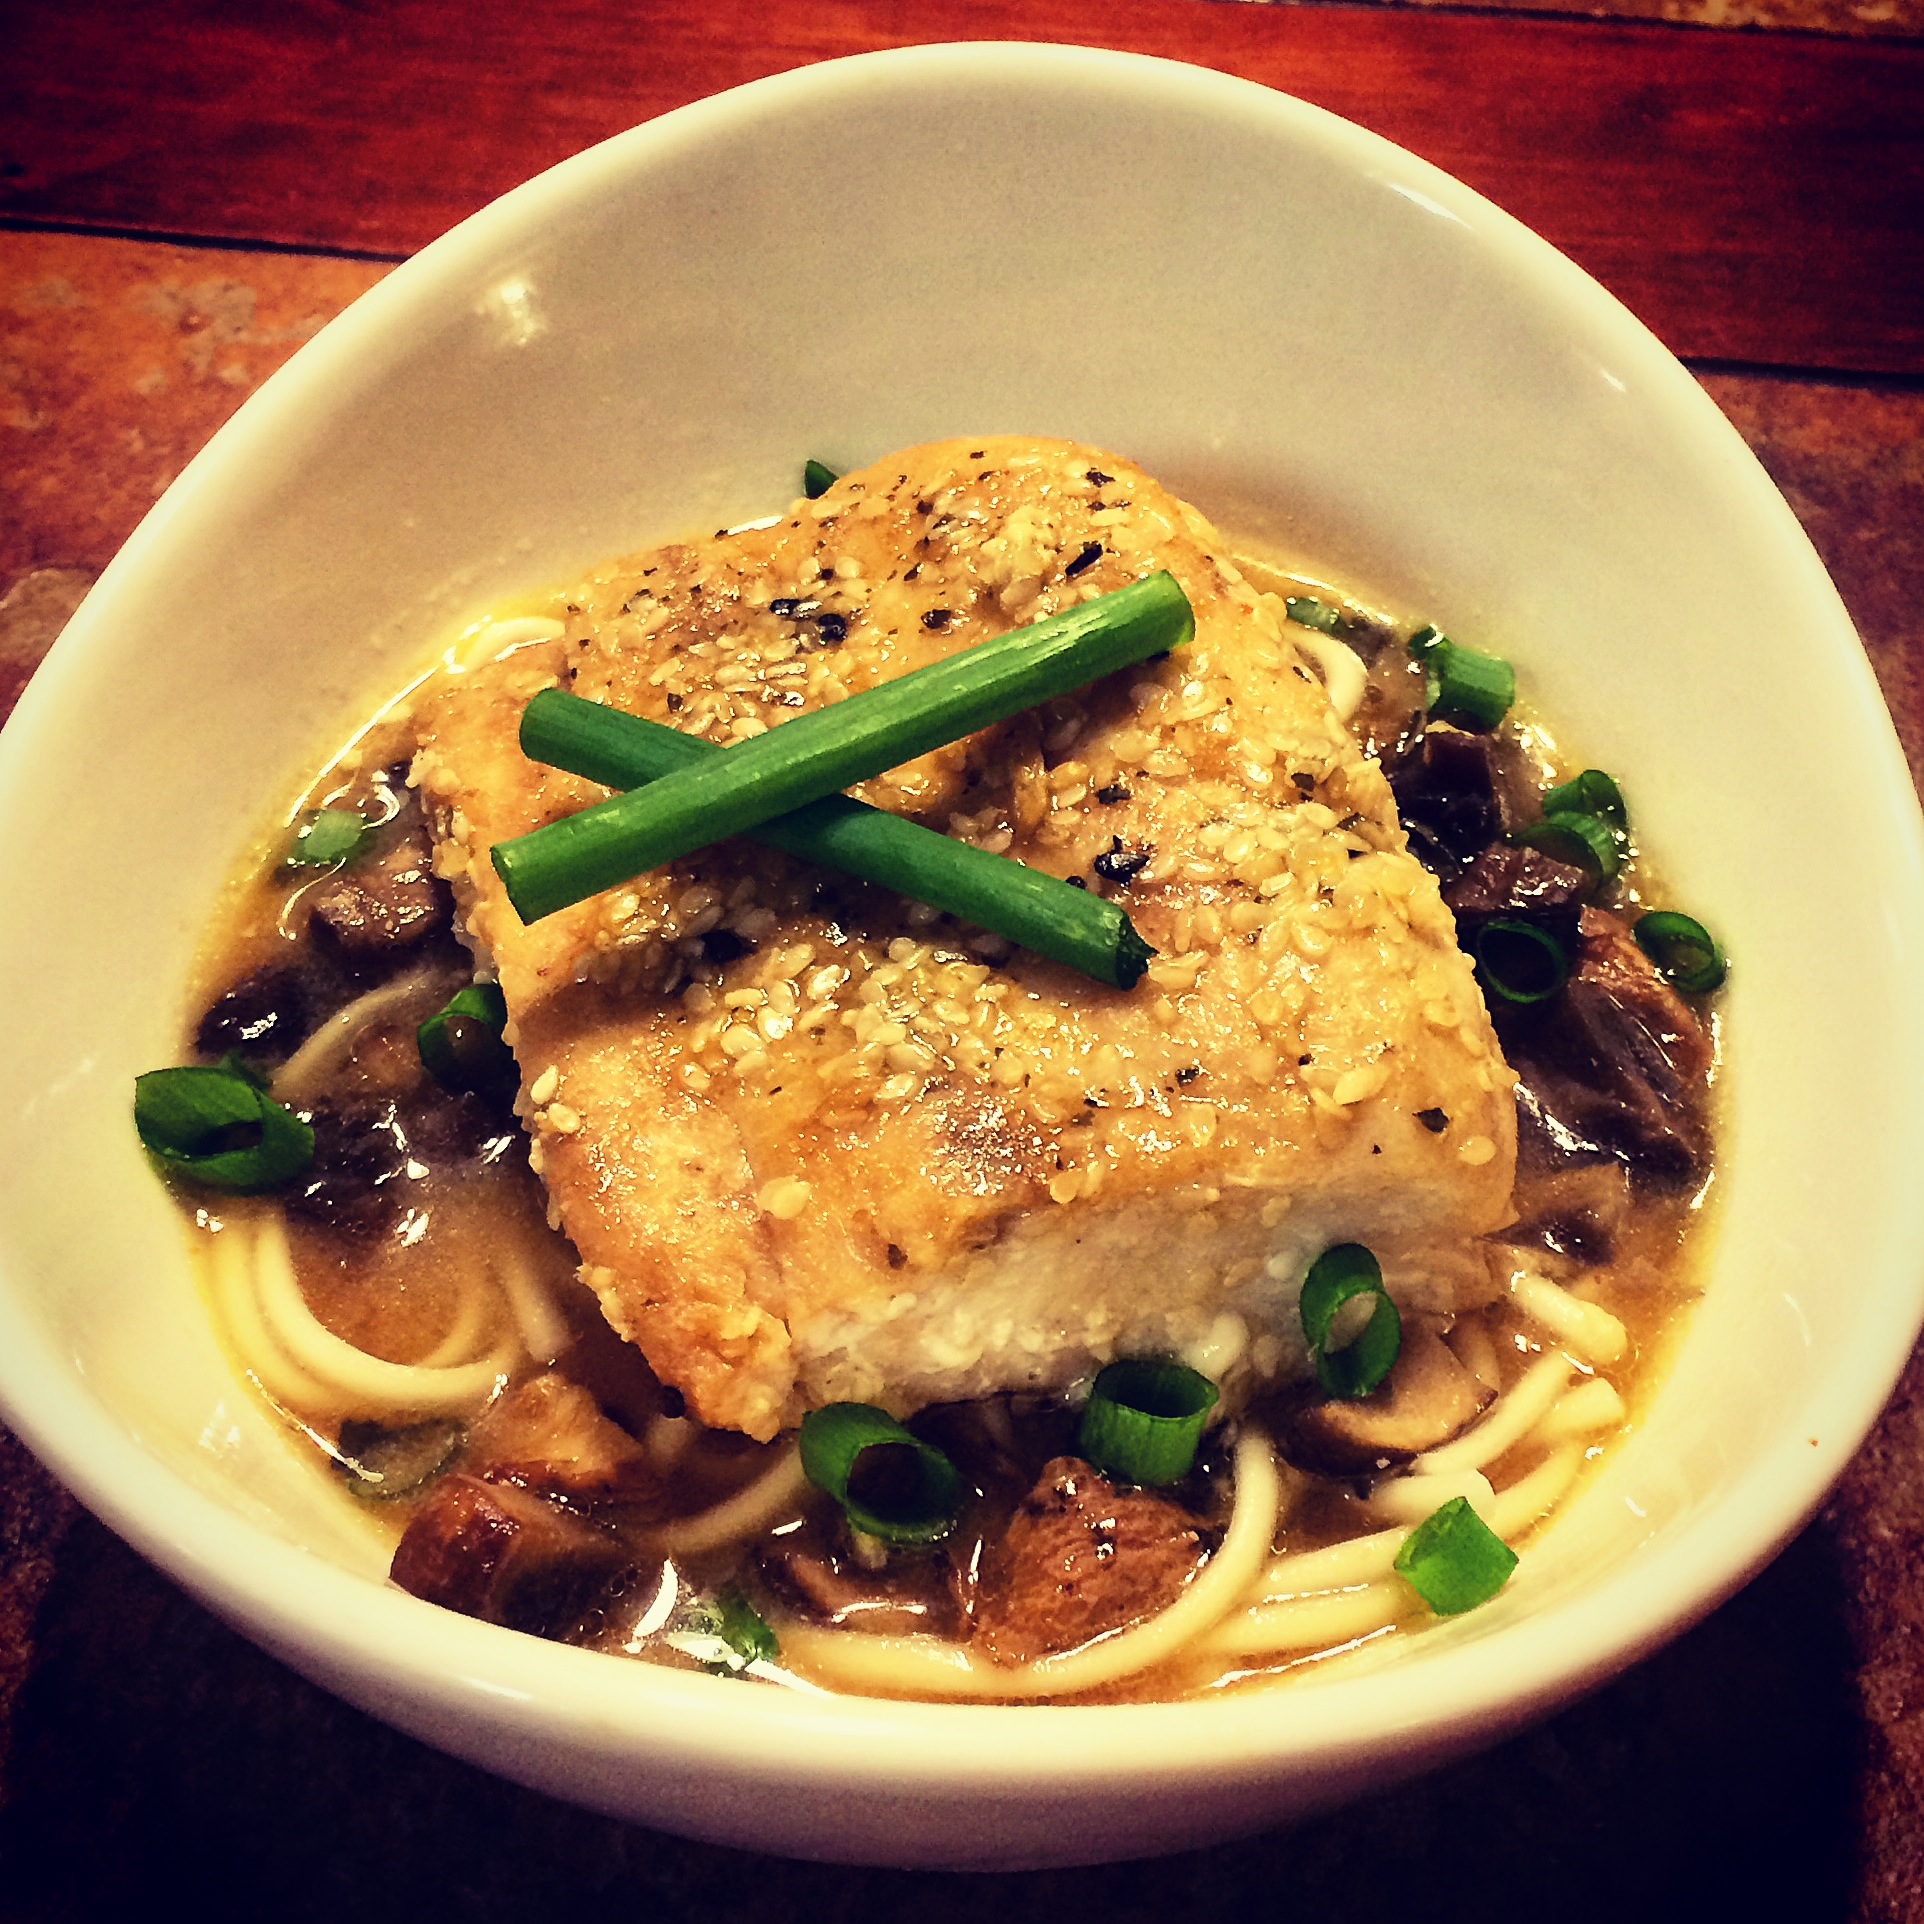 Sesame Encrusted Mahi Mahi over Mushroom Miso Broth with Udon Noodles